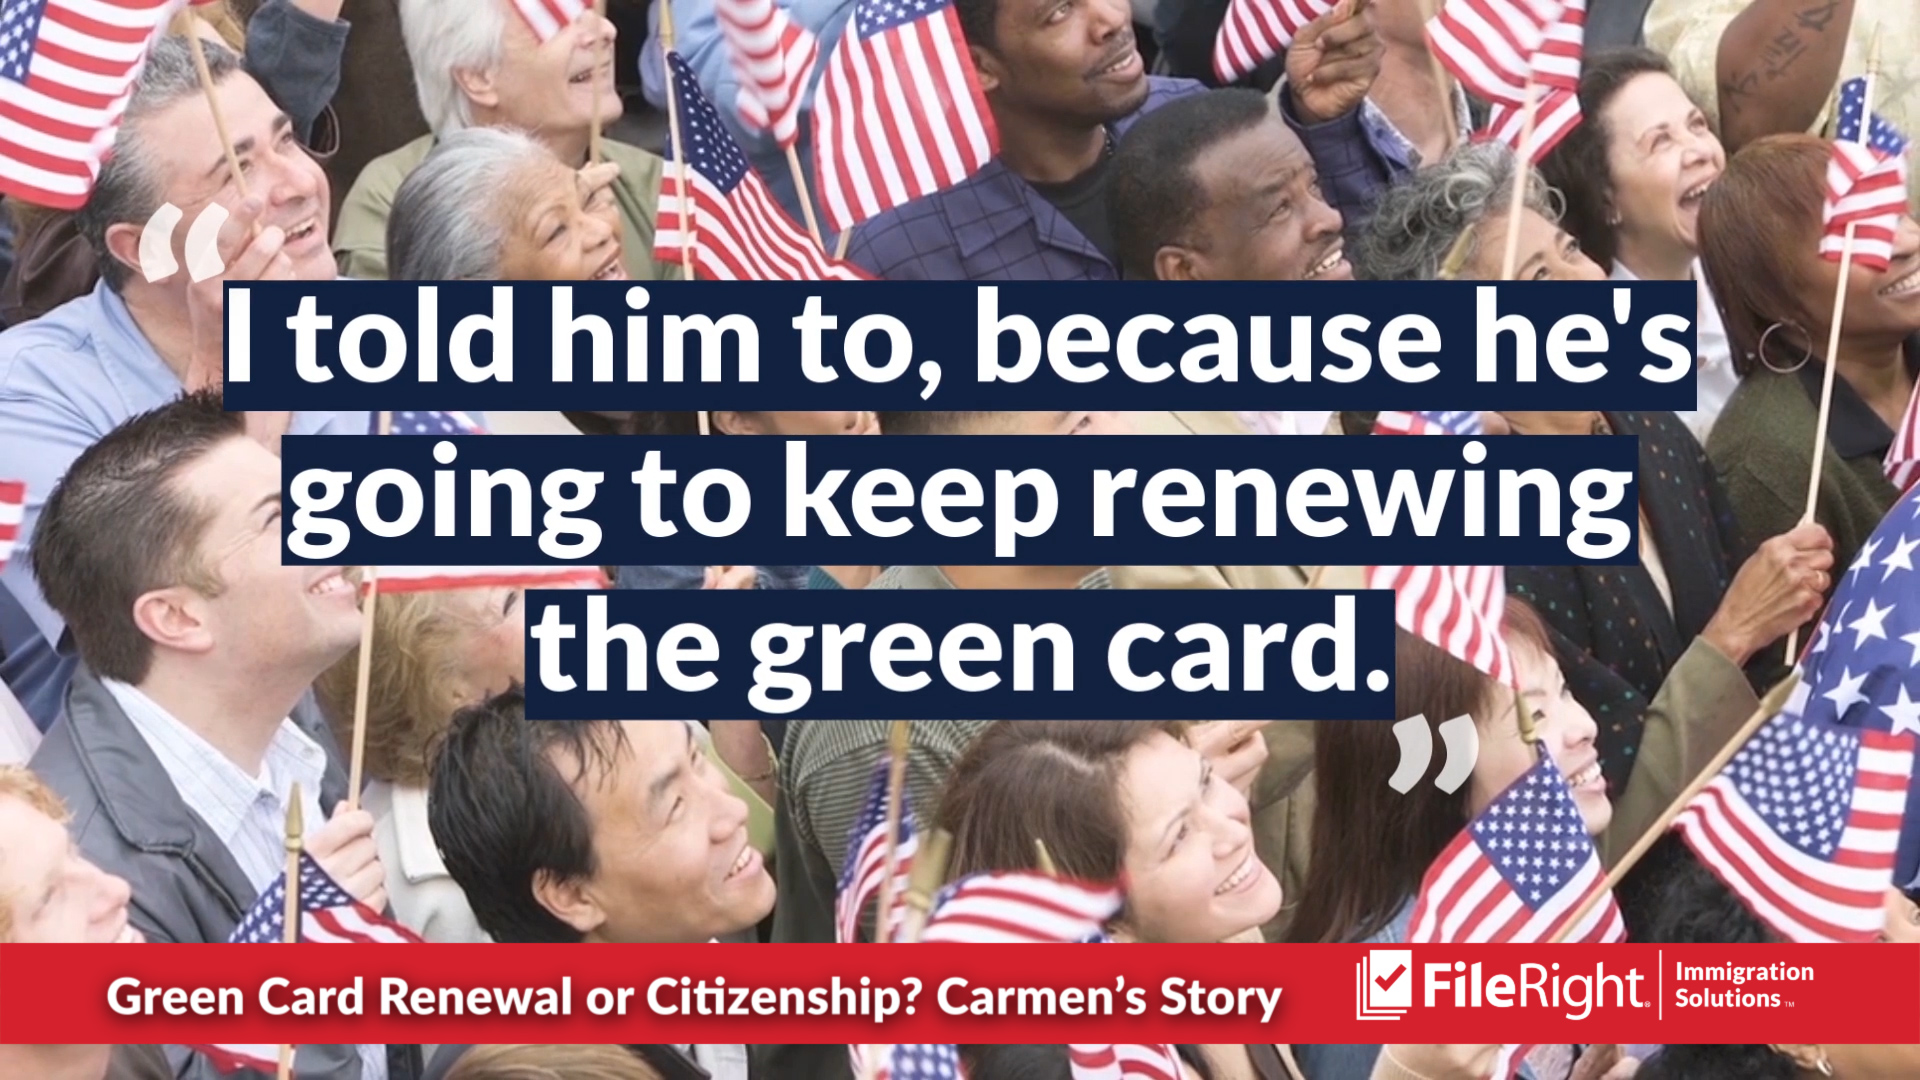 Carmen encouraged her brother to apply for citizenship after helping renew his green card.